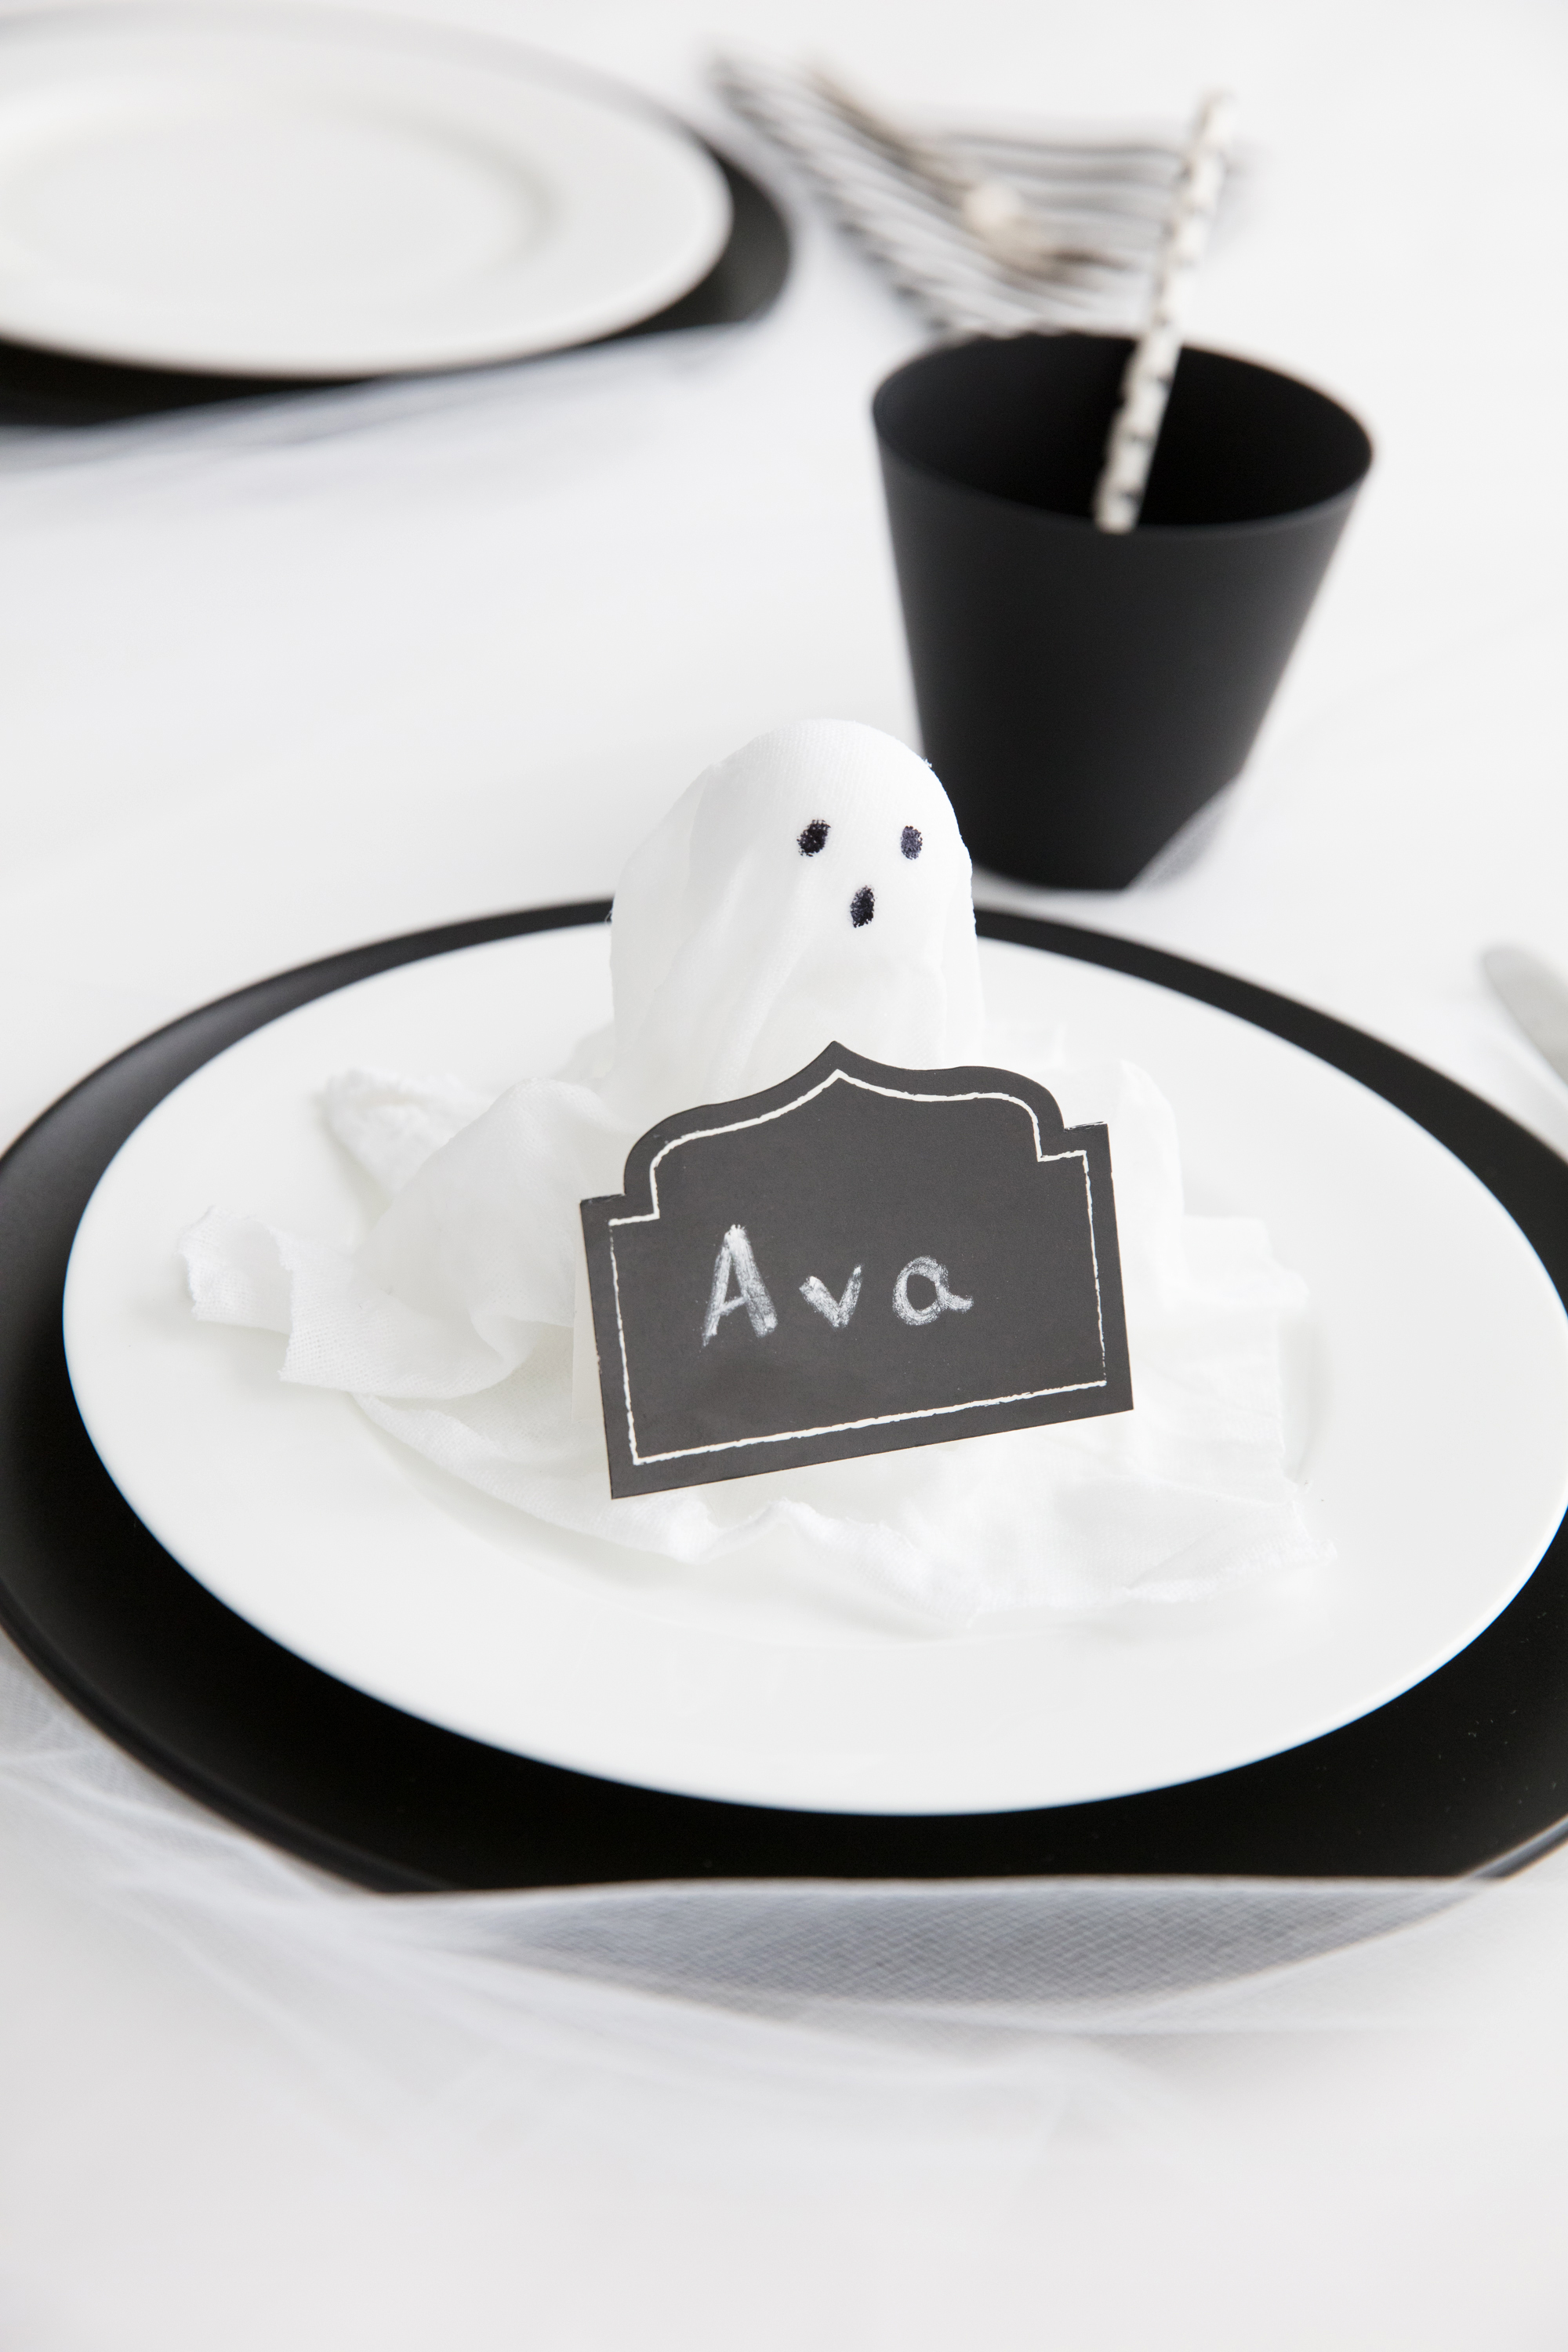 bootiful halloween cloth ghost placecard